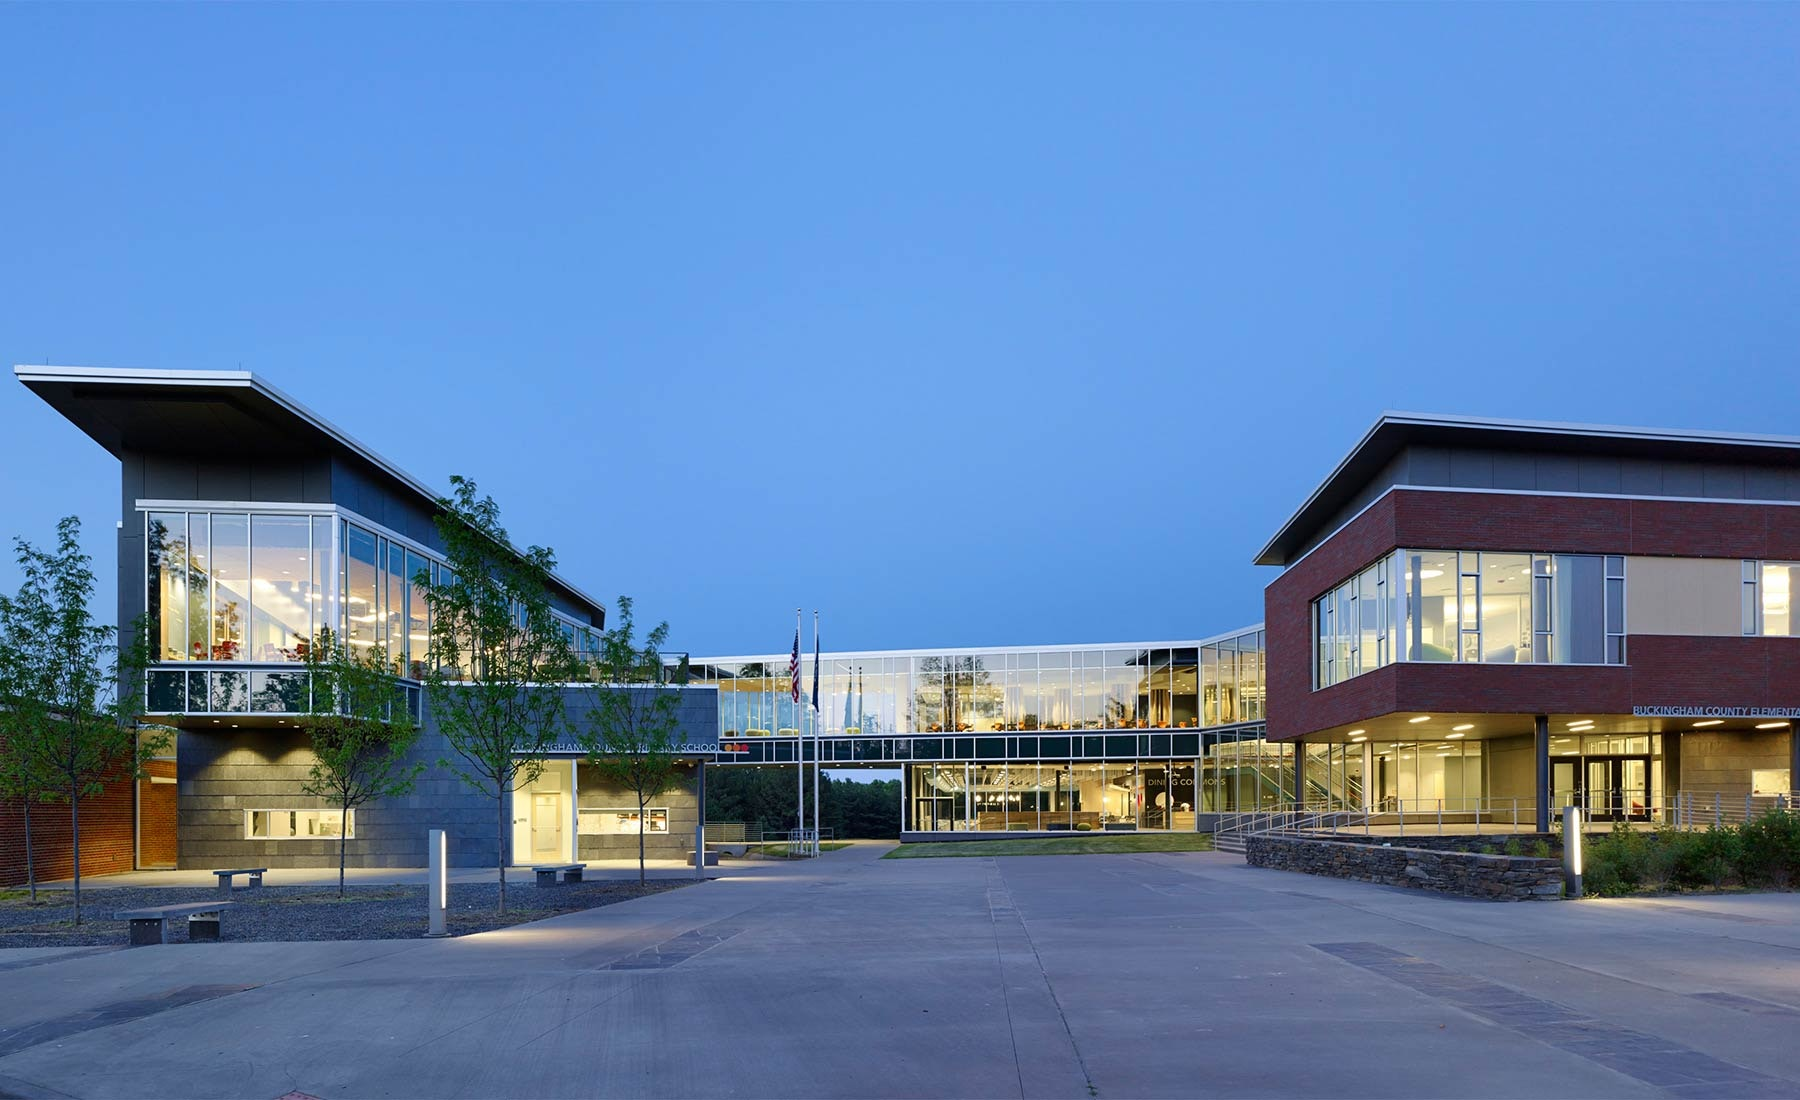 Elementary School Architecture and Design